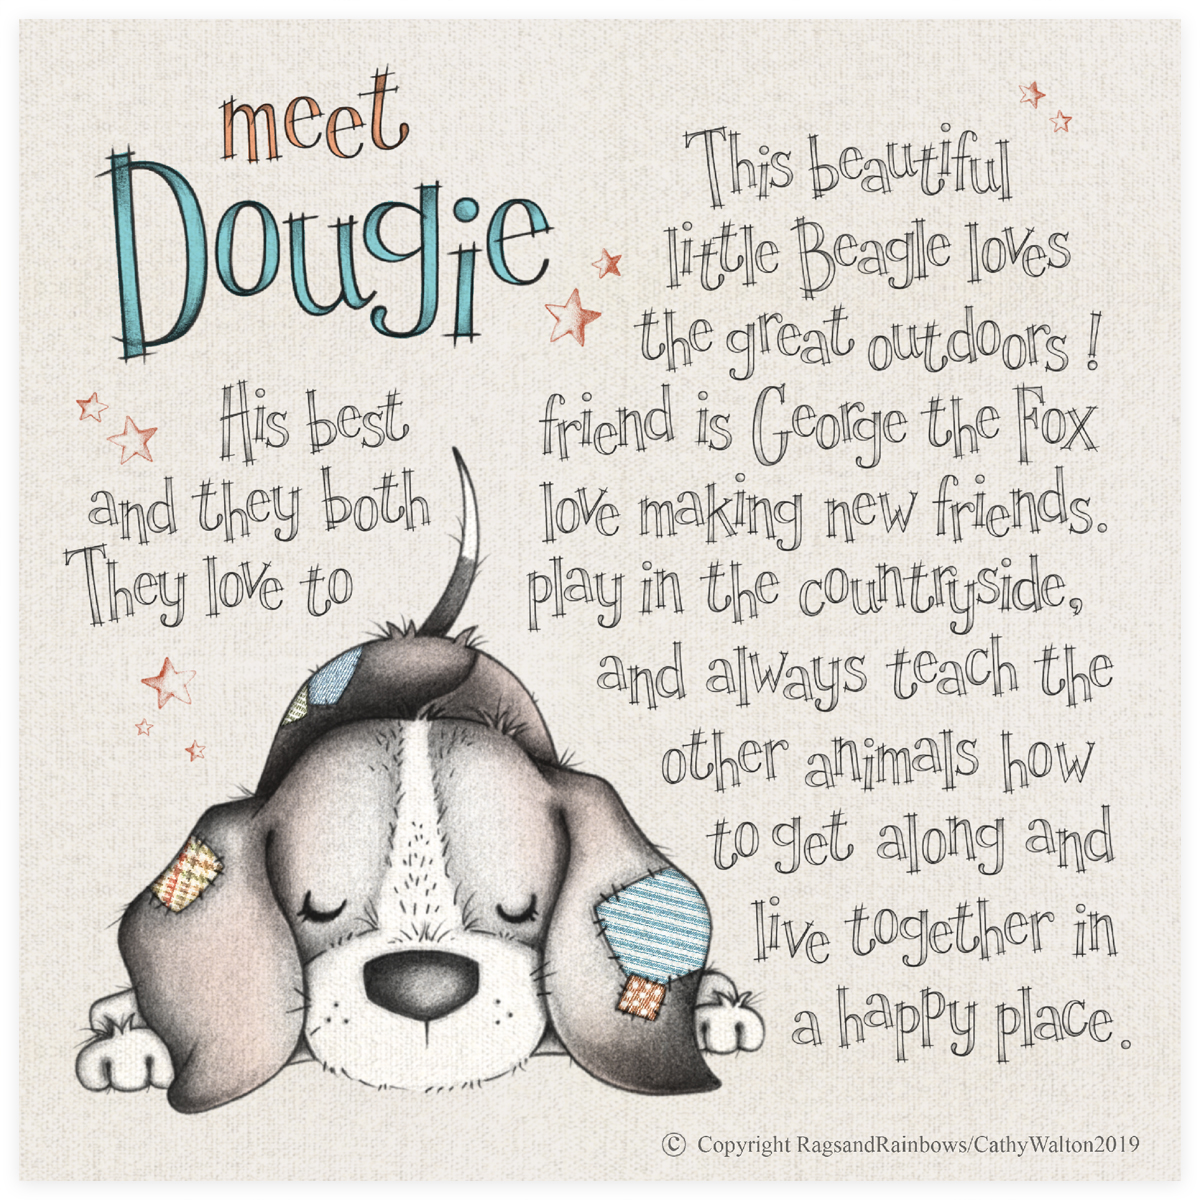 Dougie the Beagle